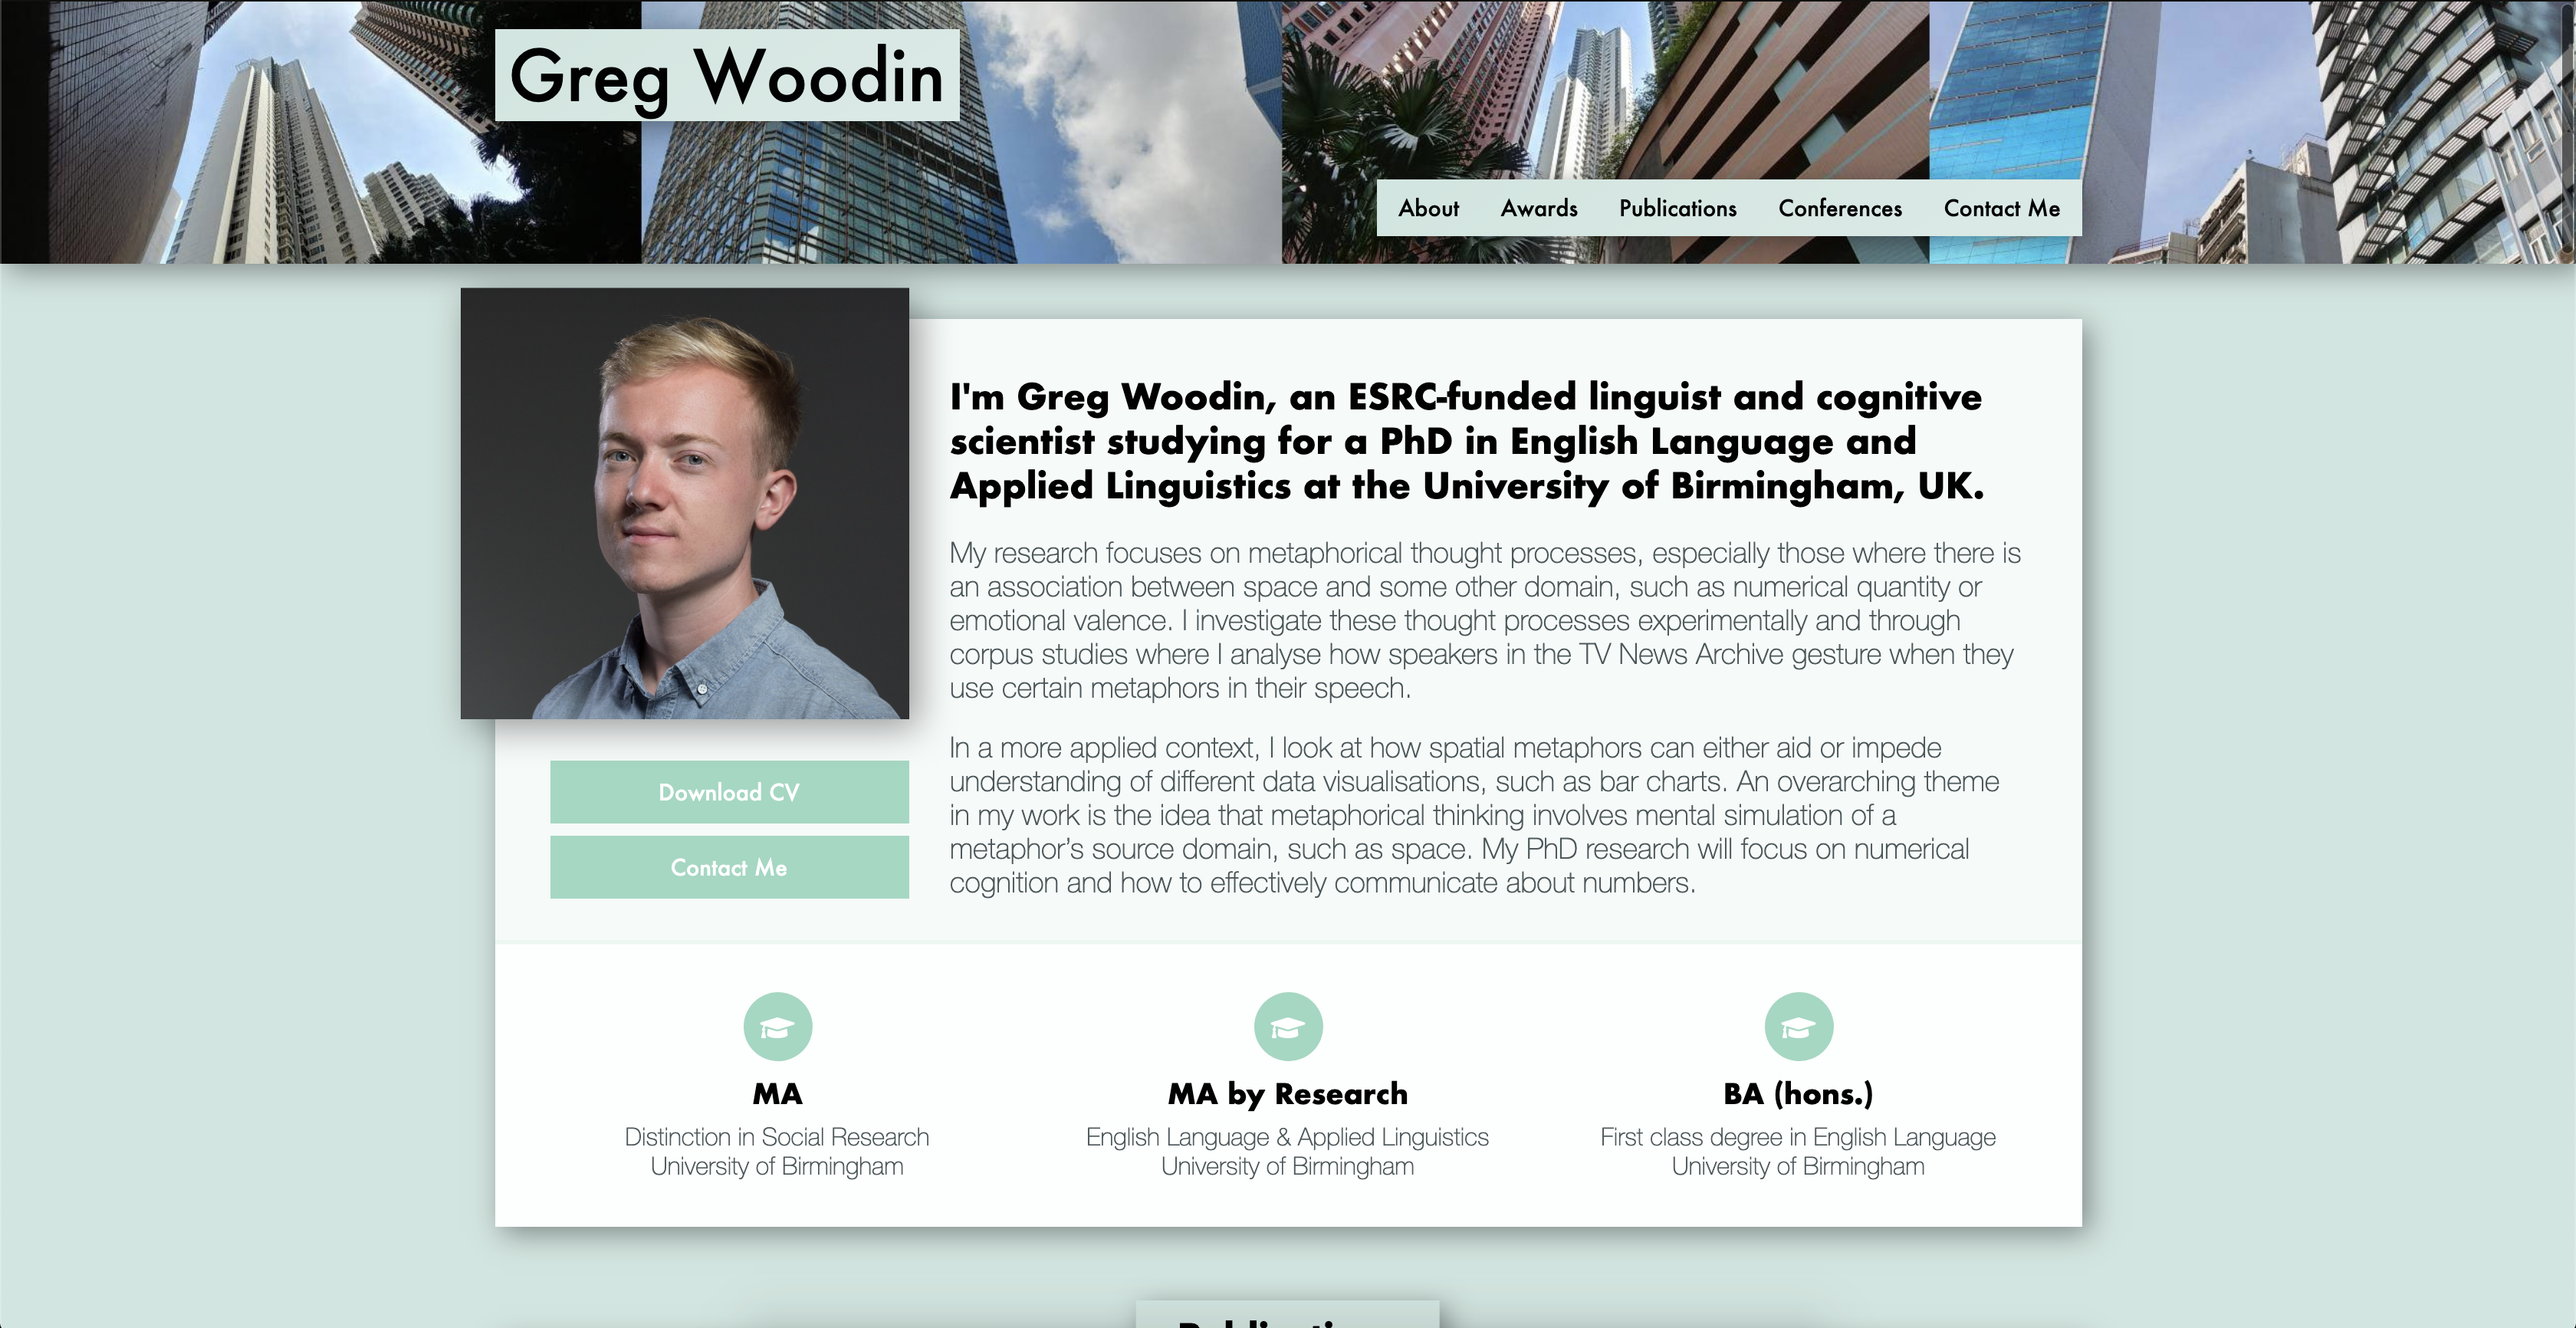 Home page of www.gregwoodin.co.uk